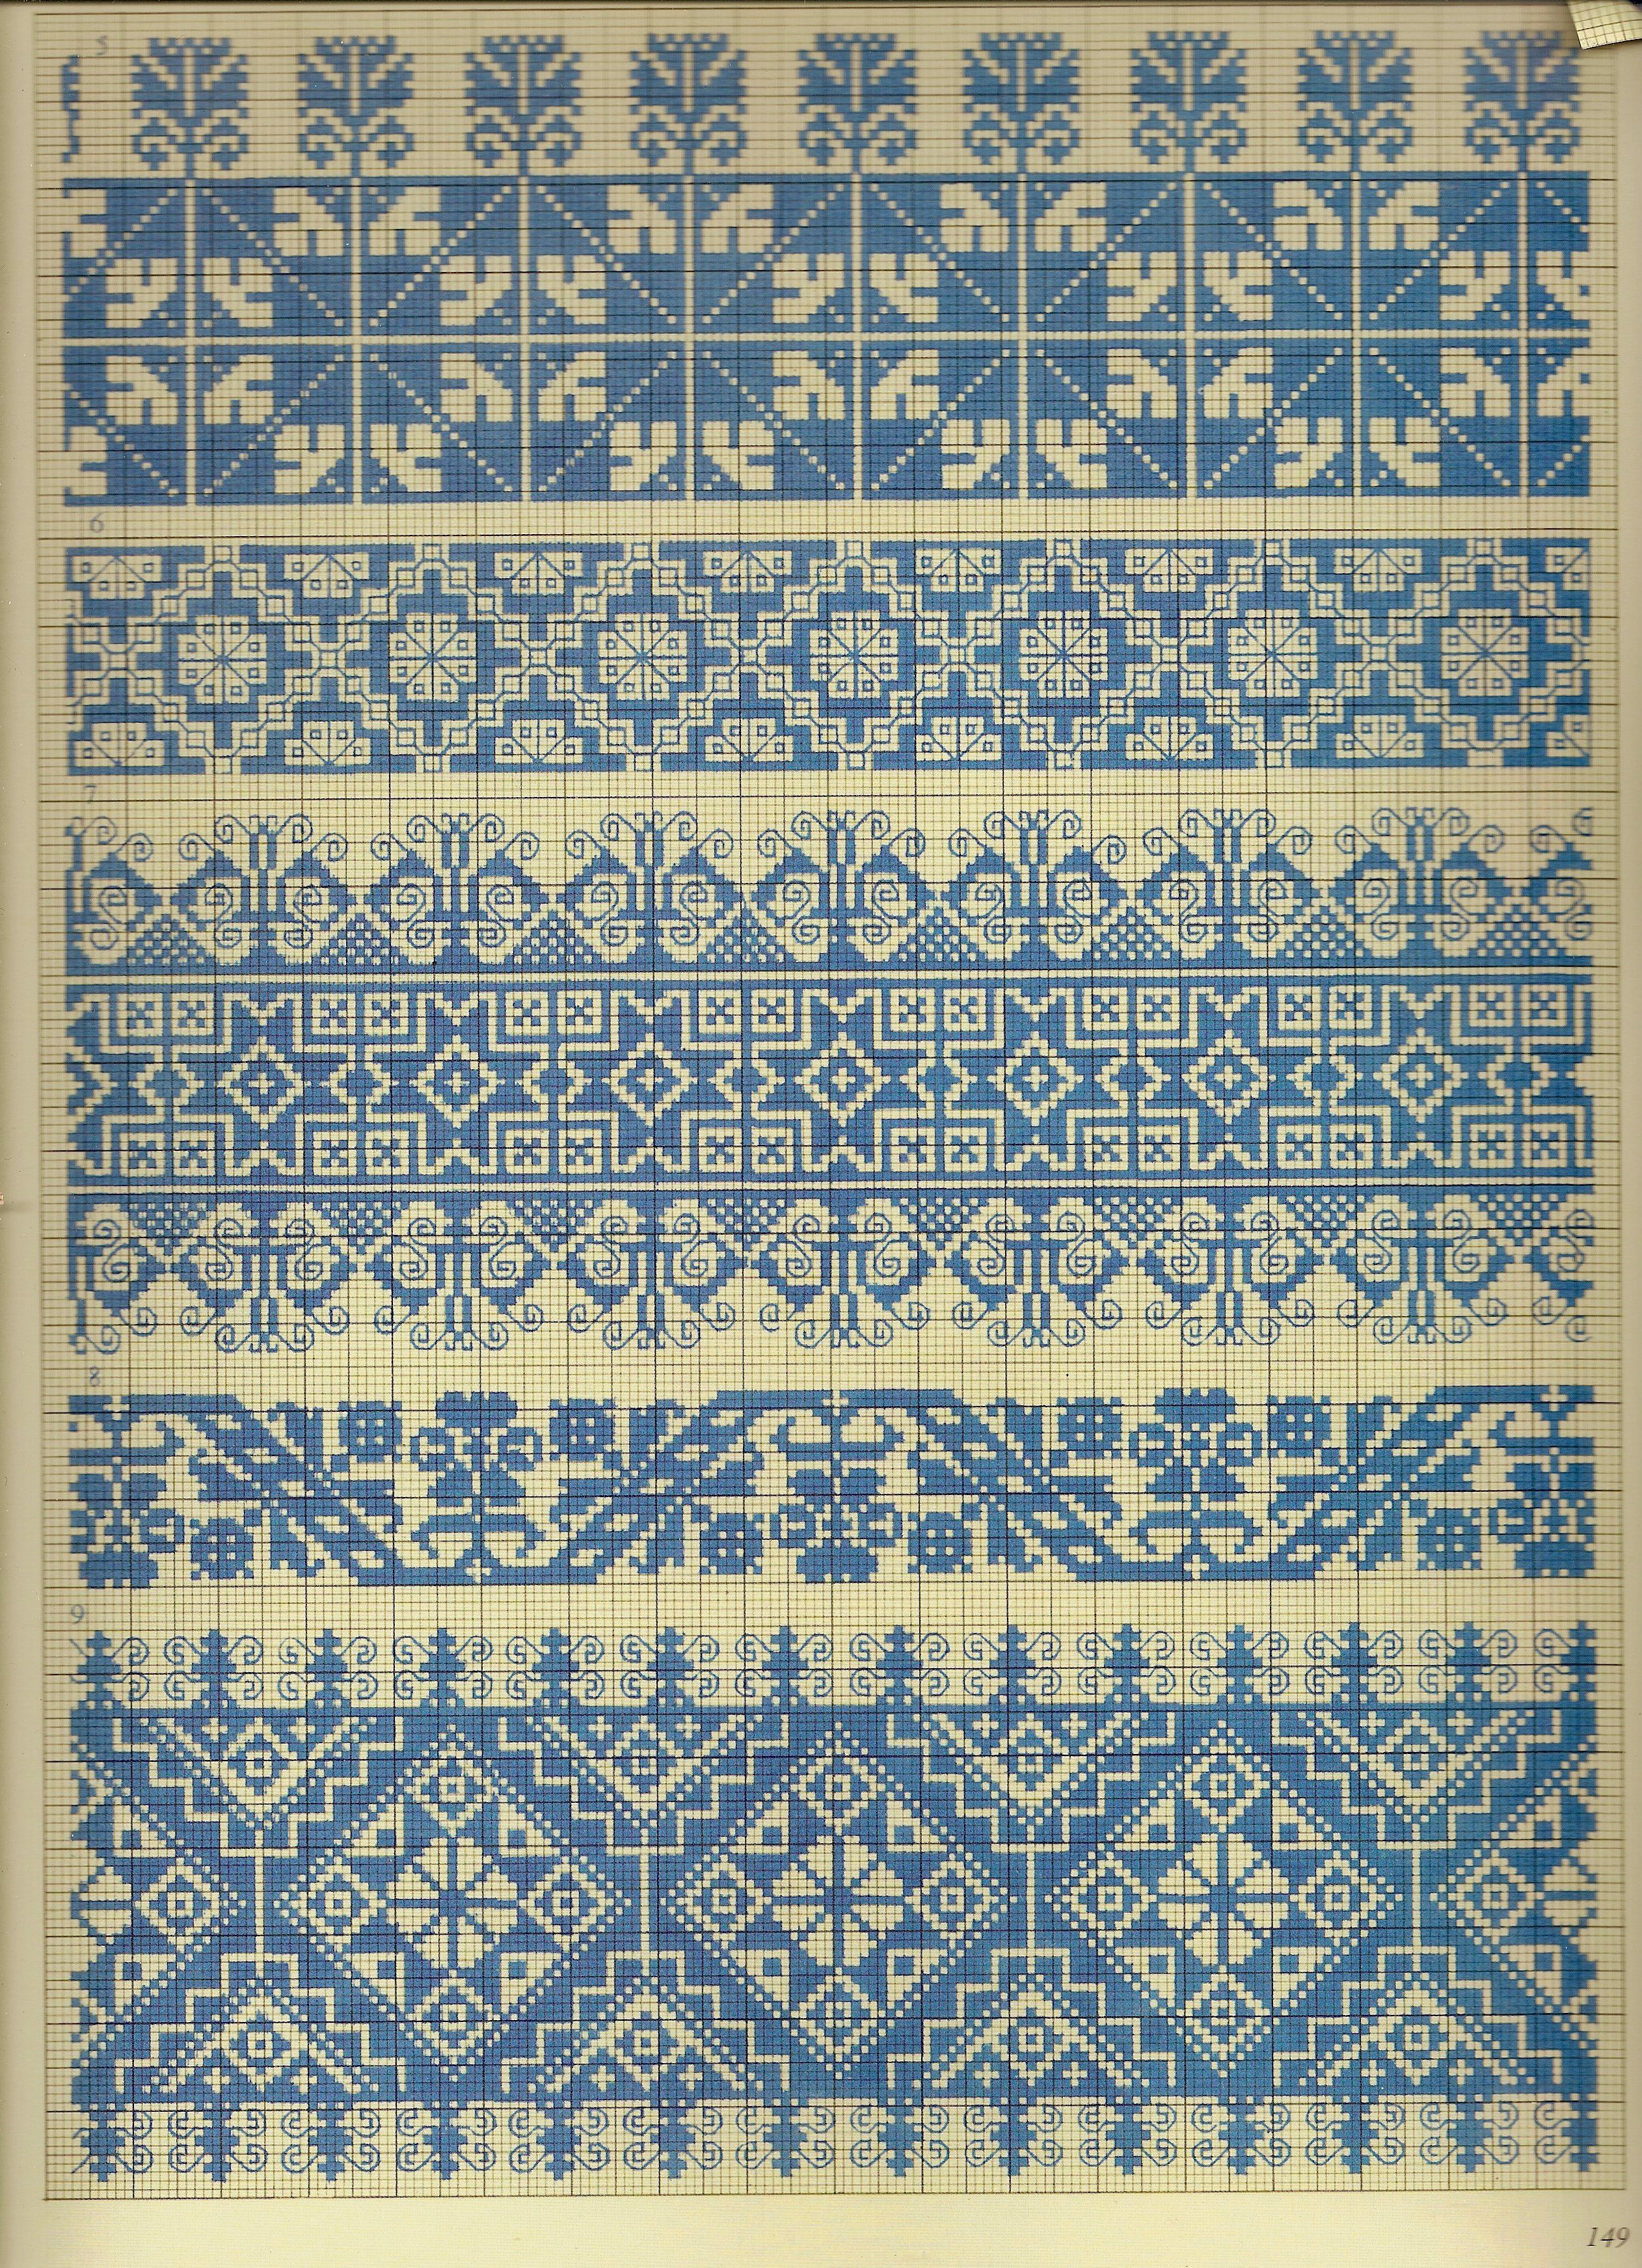 Patterns sourced from: European Folk: Fabric Design and Dress from ...